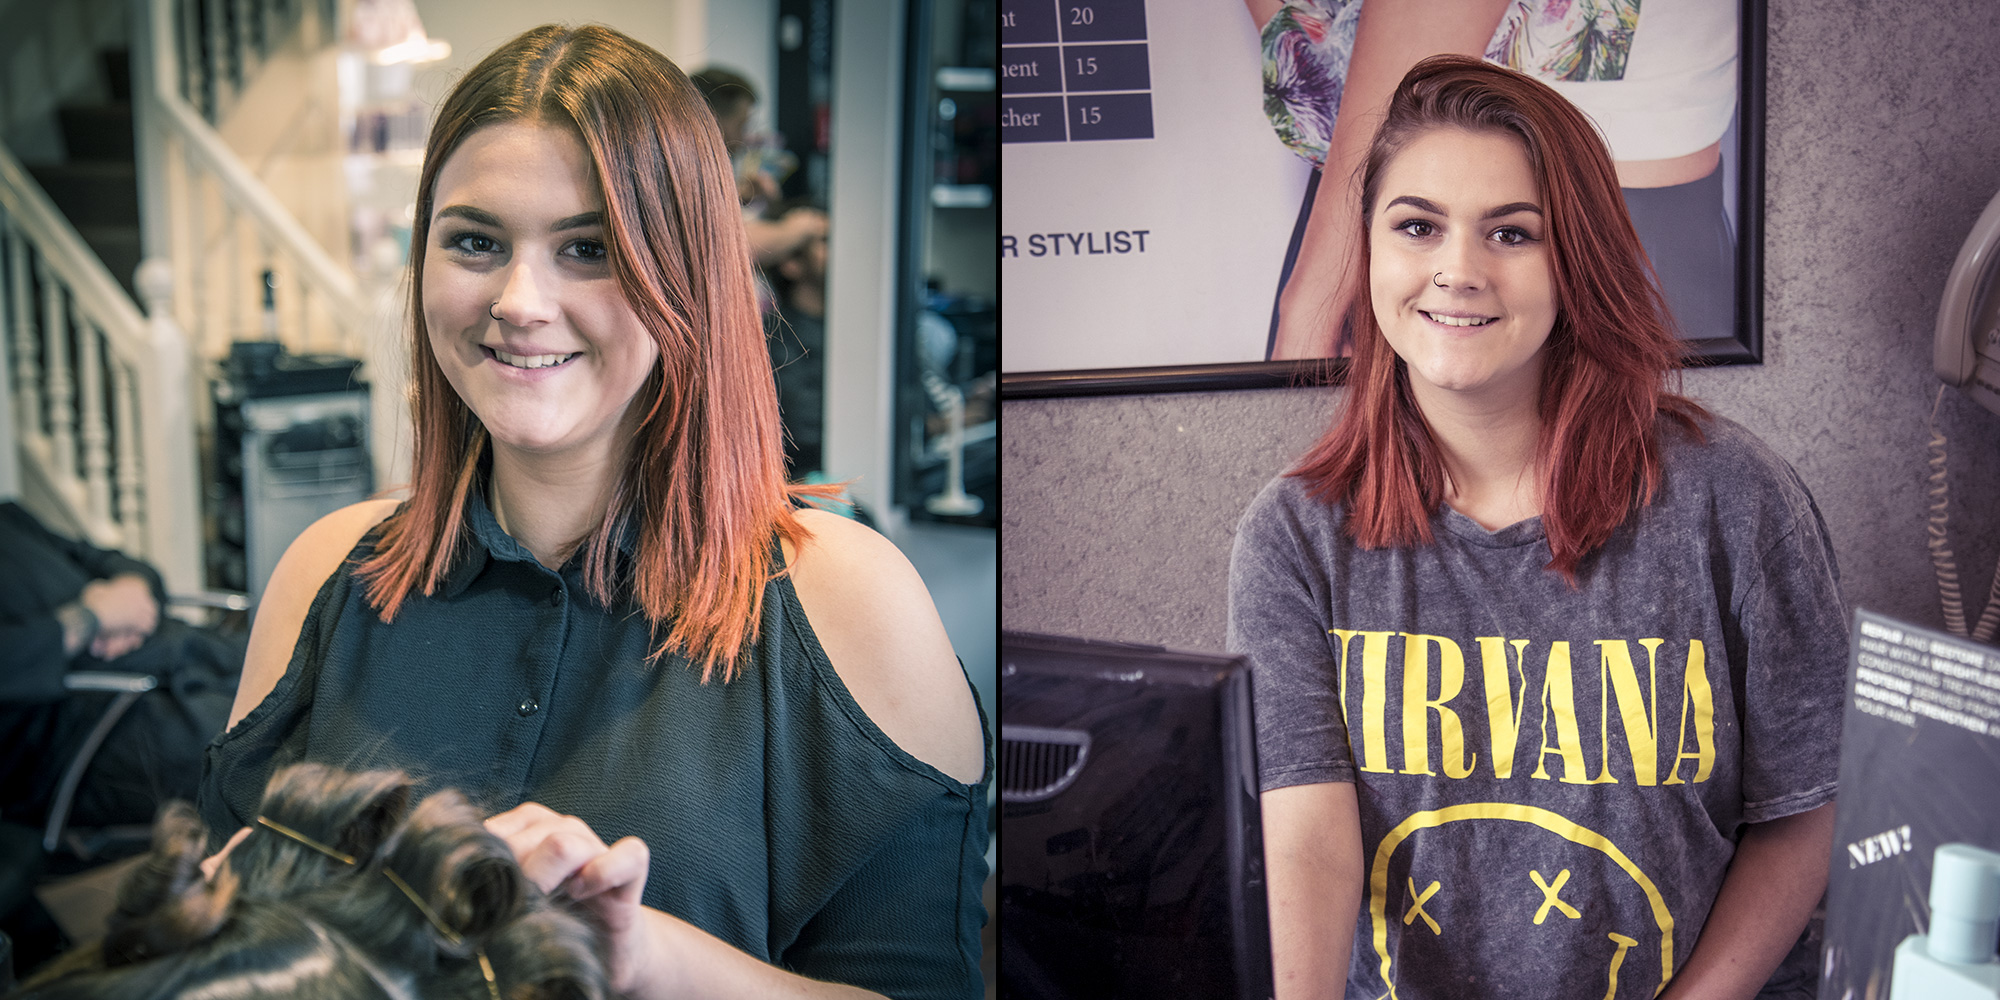 Jakata Salon  Apprentice Focus  The road to becoming a stylist Hairdressers in Warrington